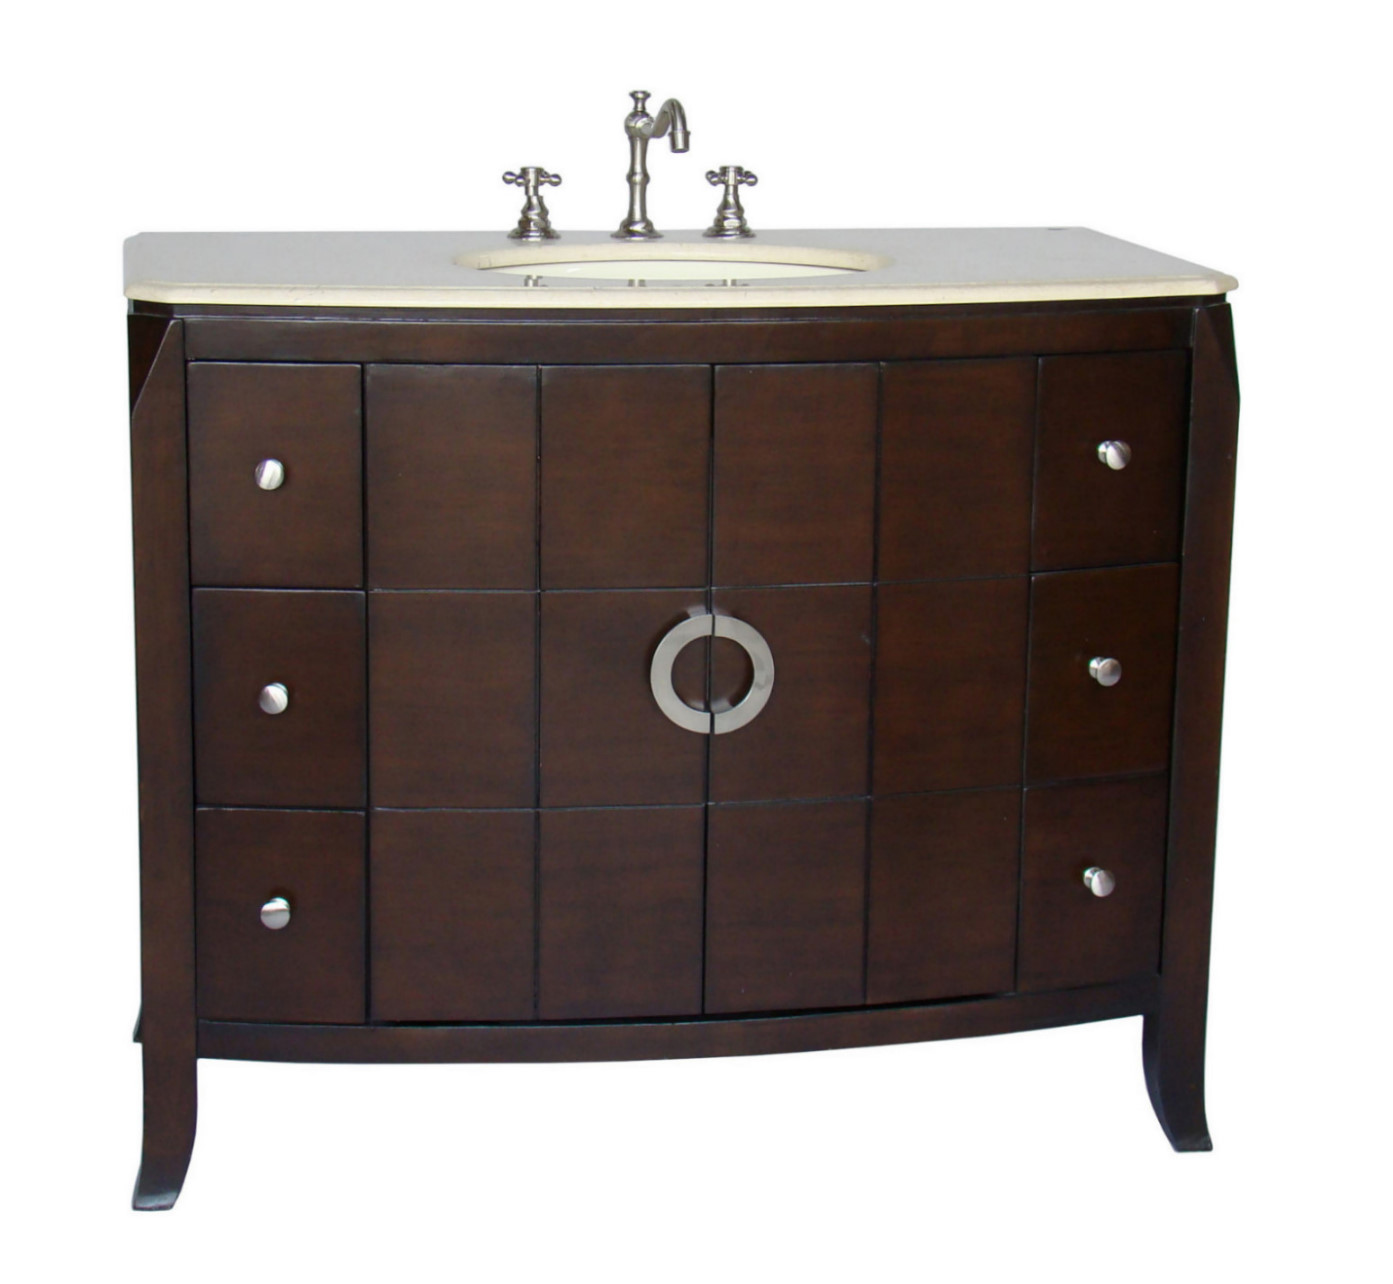 30 inch to 48 inch vanities single bathroom vanities for Bathroom 48 inch vanity